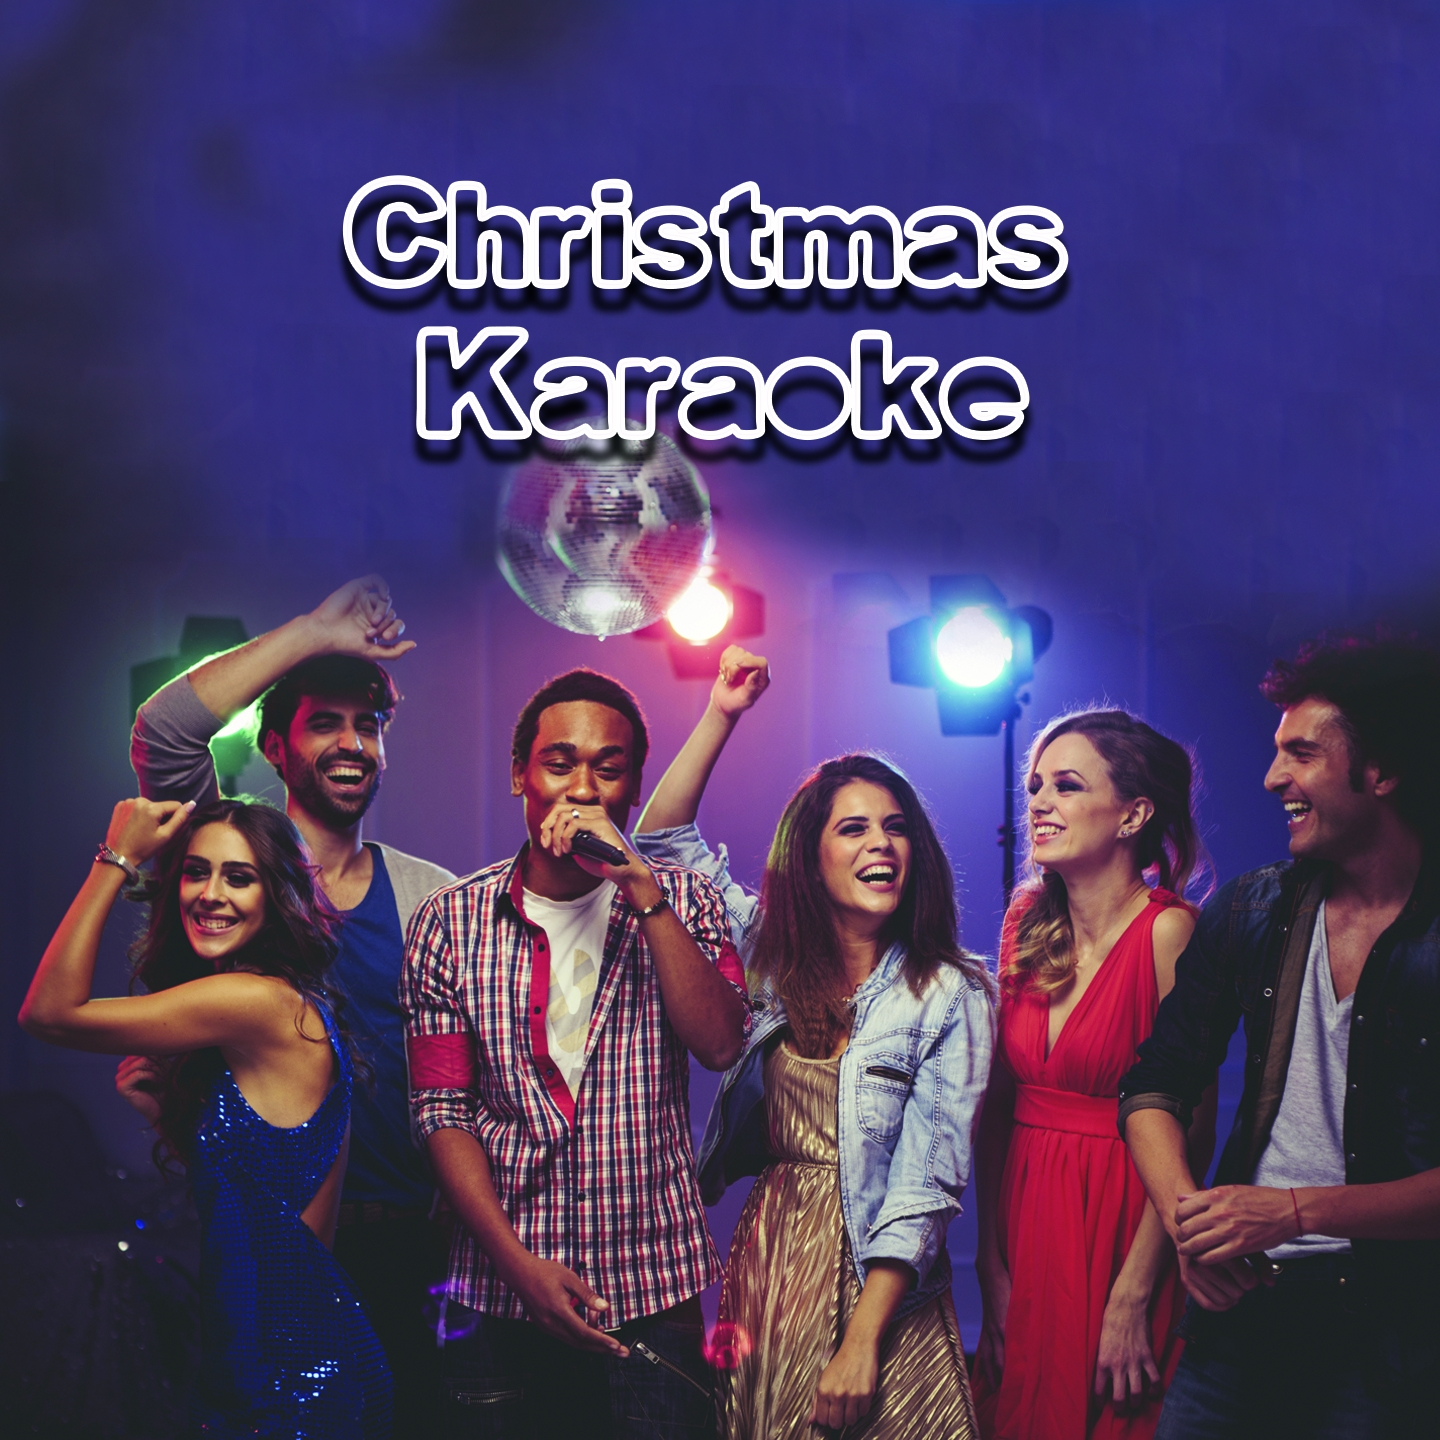 0 - Christmas Karaoke (Christmas Atmosphere)